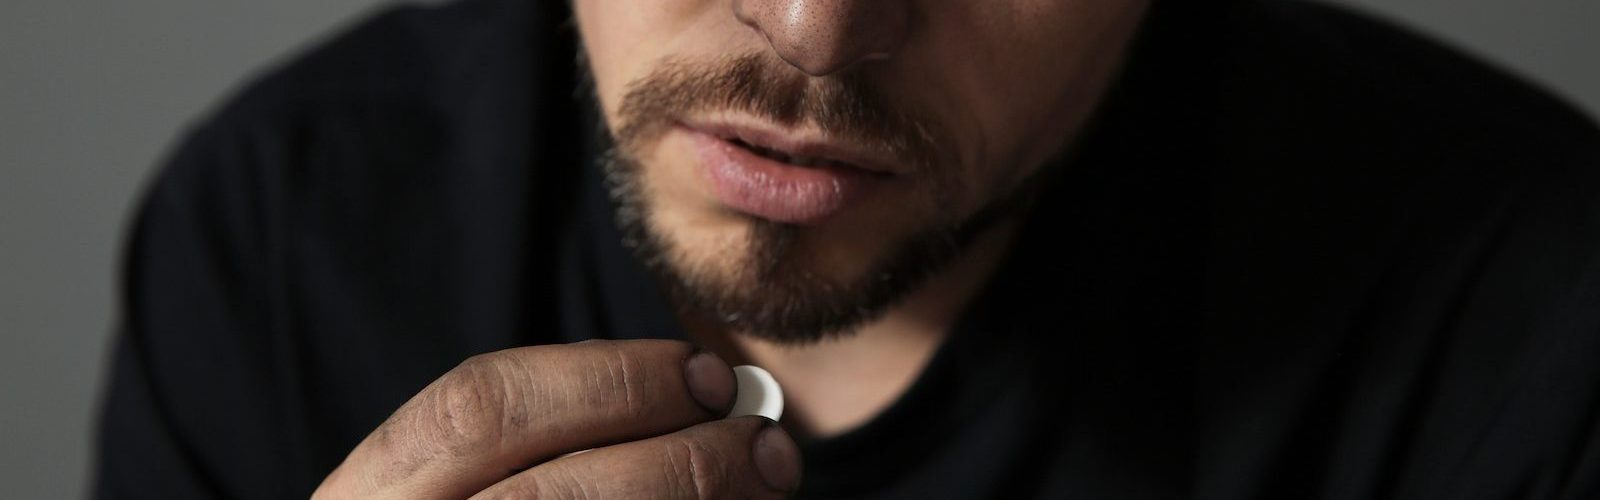 LSD vs Acid: Side-Effects of Using Both & How to Tell if Addicted to Hallucinogens